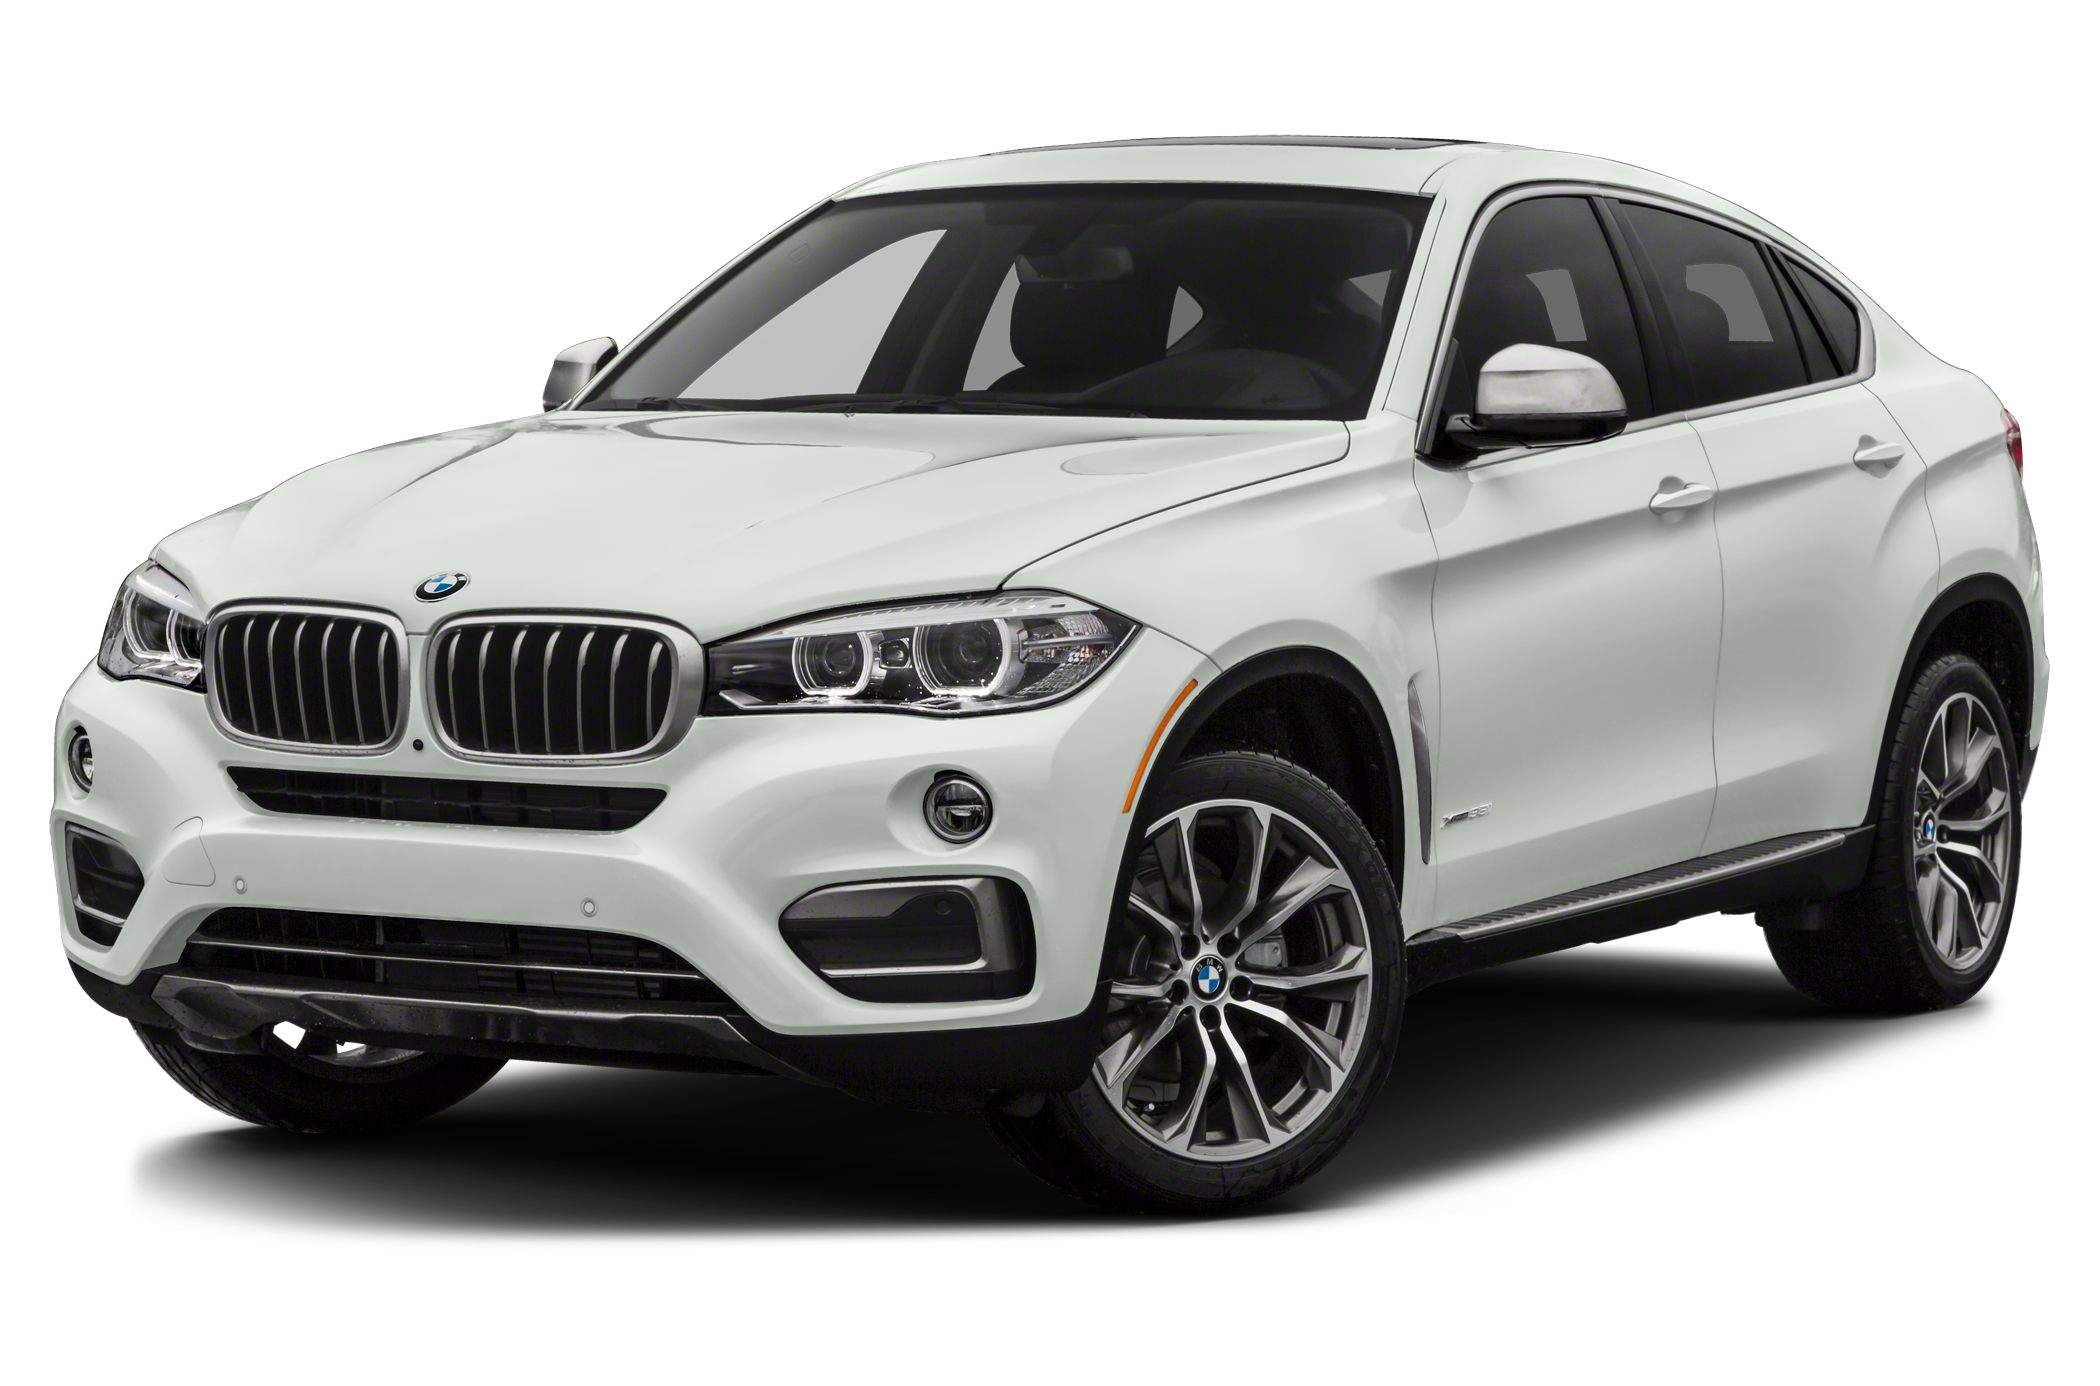 2017 Bmw X6 Xdrive50i 4dr All Wheel Drive Sports Activity Coupe Specs And Prices